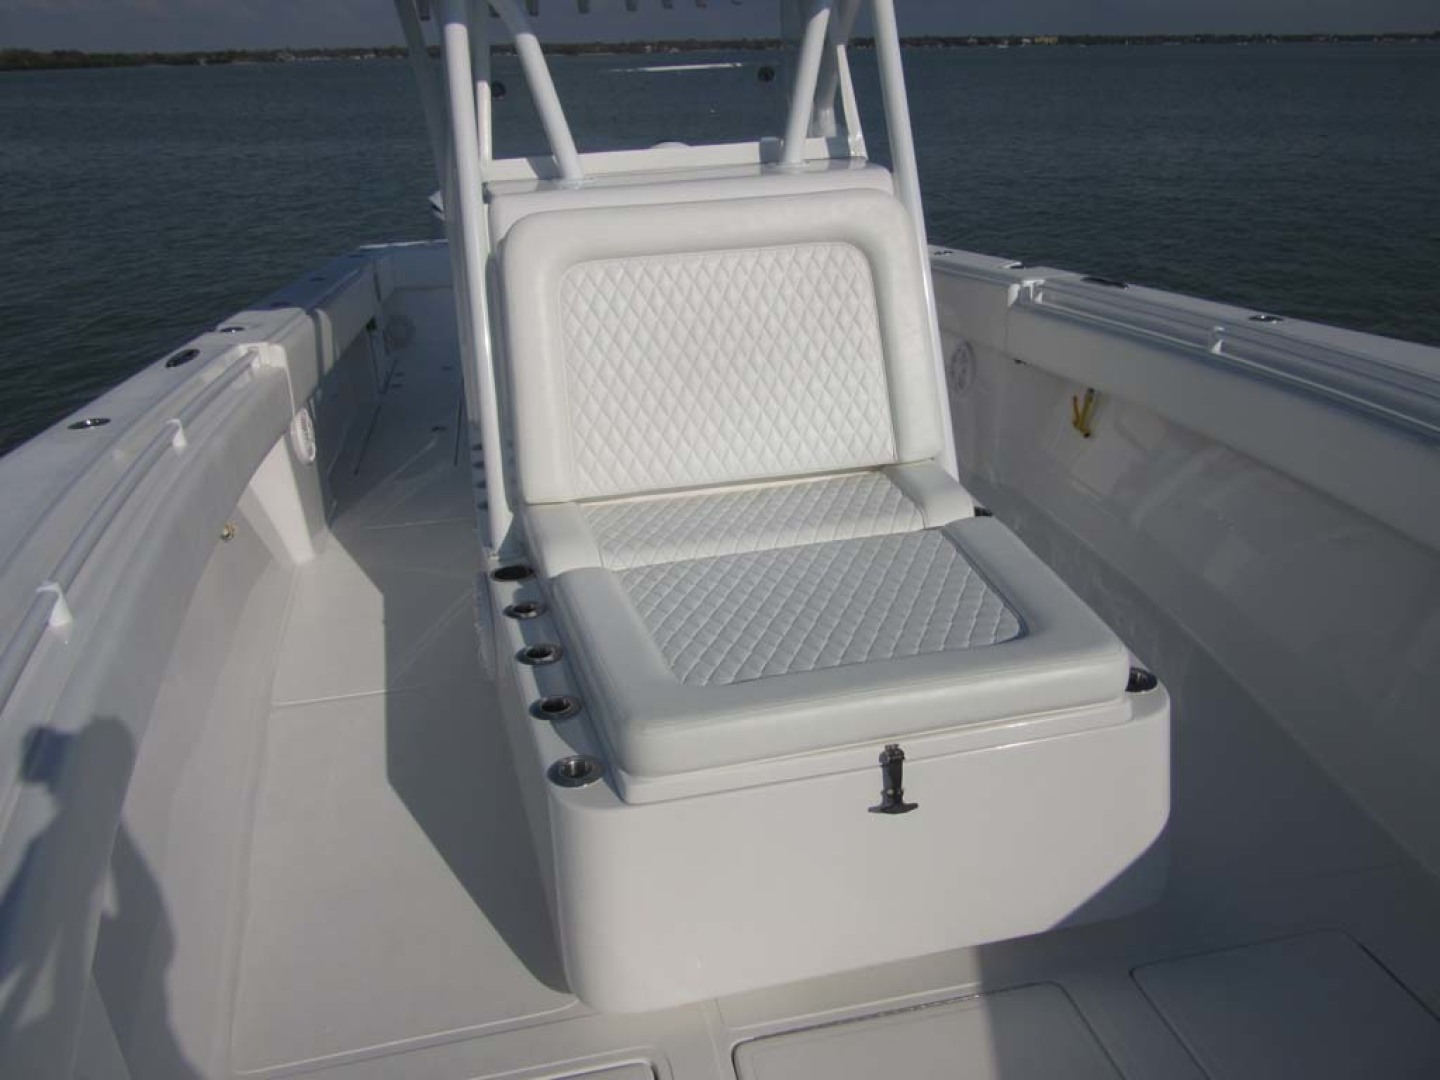 SeaHunter-39 Center Console 2017-SQUEEZE PLAY II Madeira Beach-Florida-United States-Fwd Lounge Seat-1117890 | Thumbnail